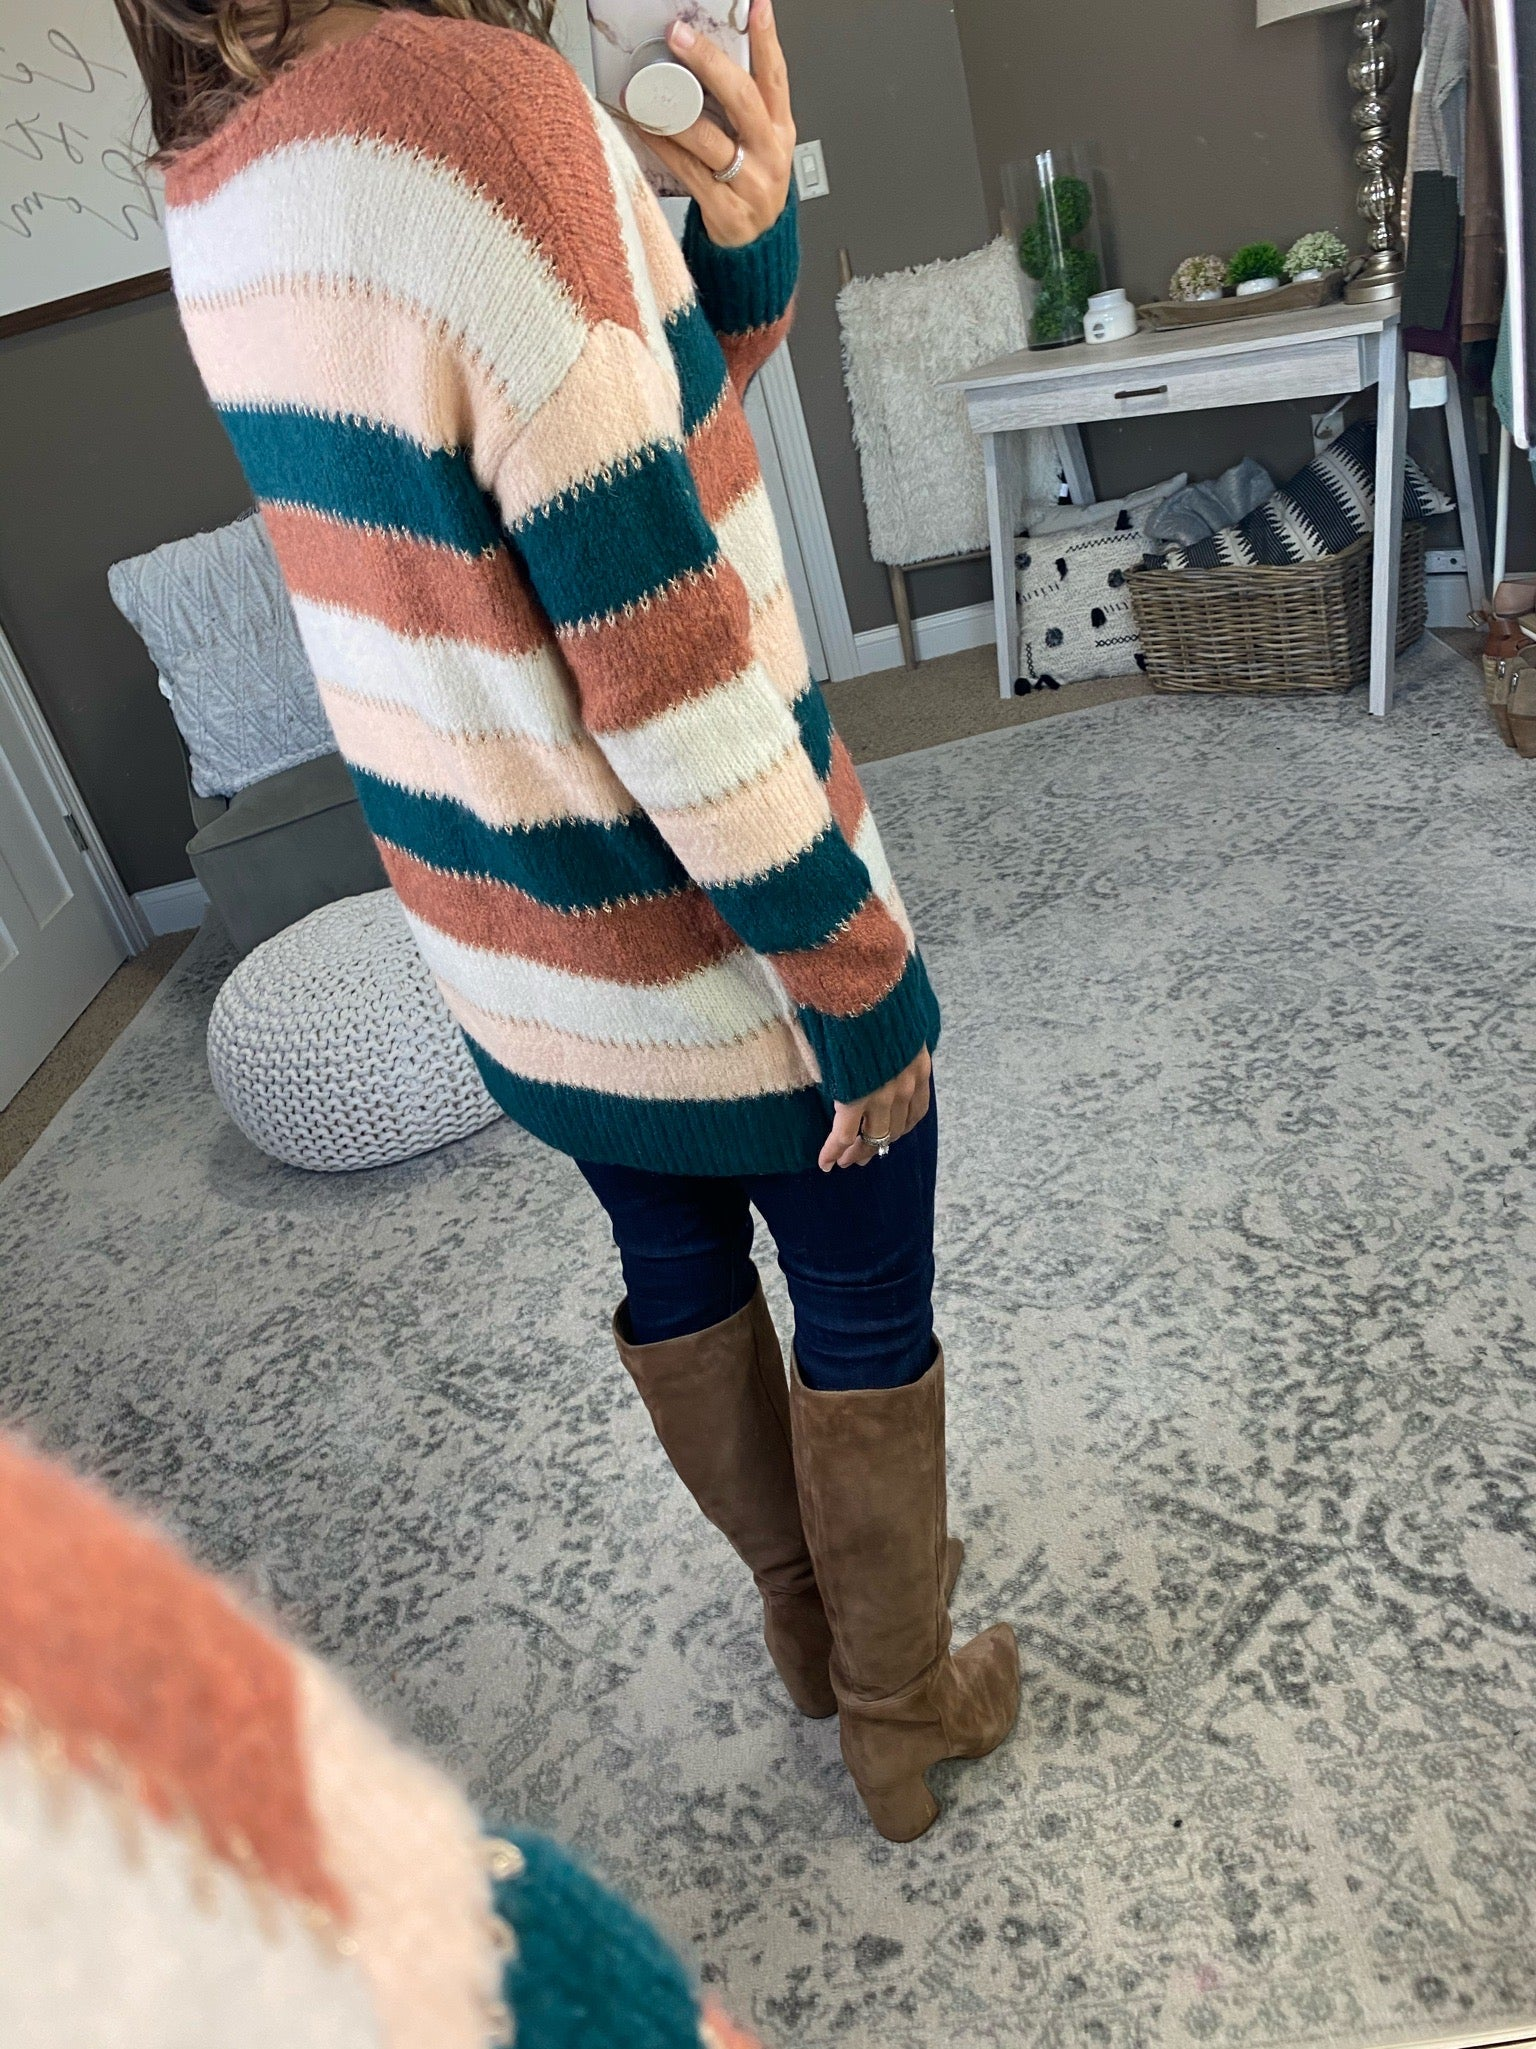 Small Town Peach and Teal Stripe Sweater with Gold Stitching